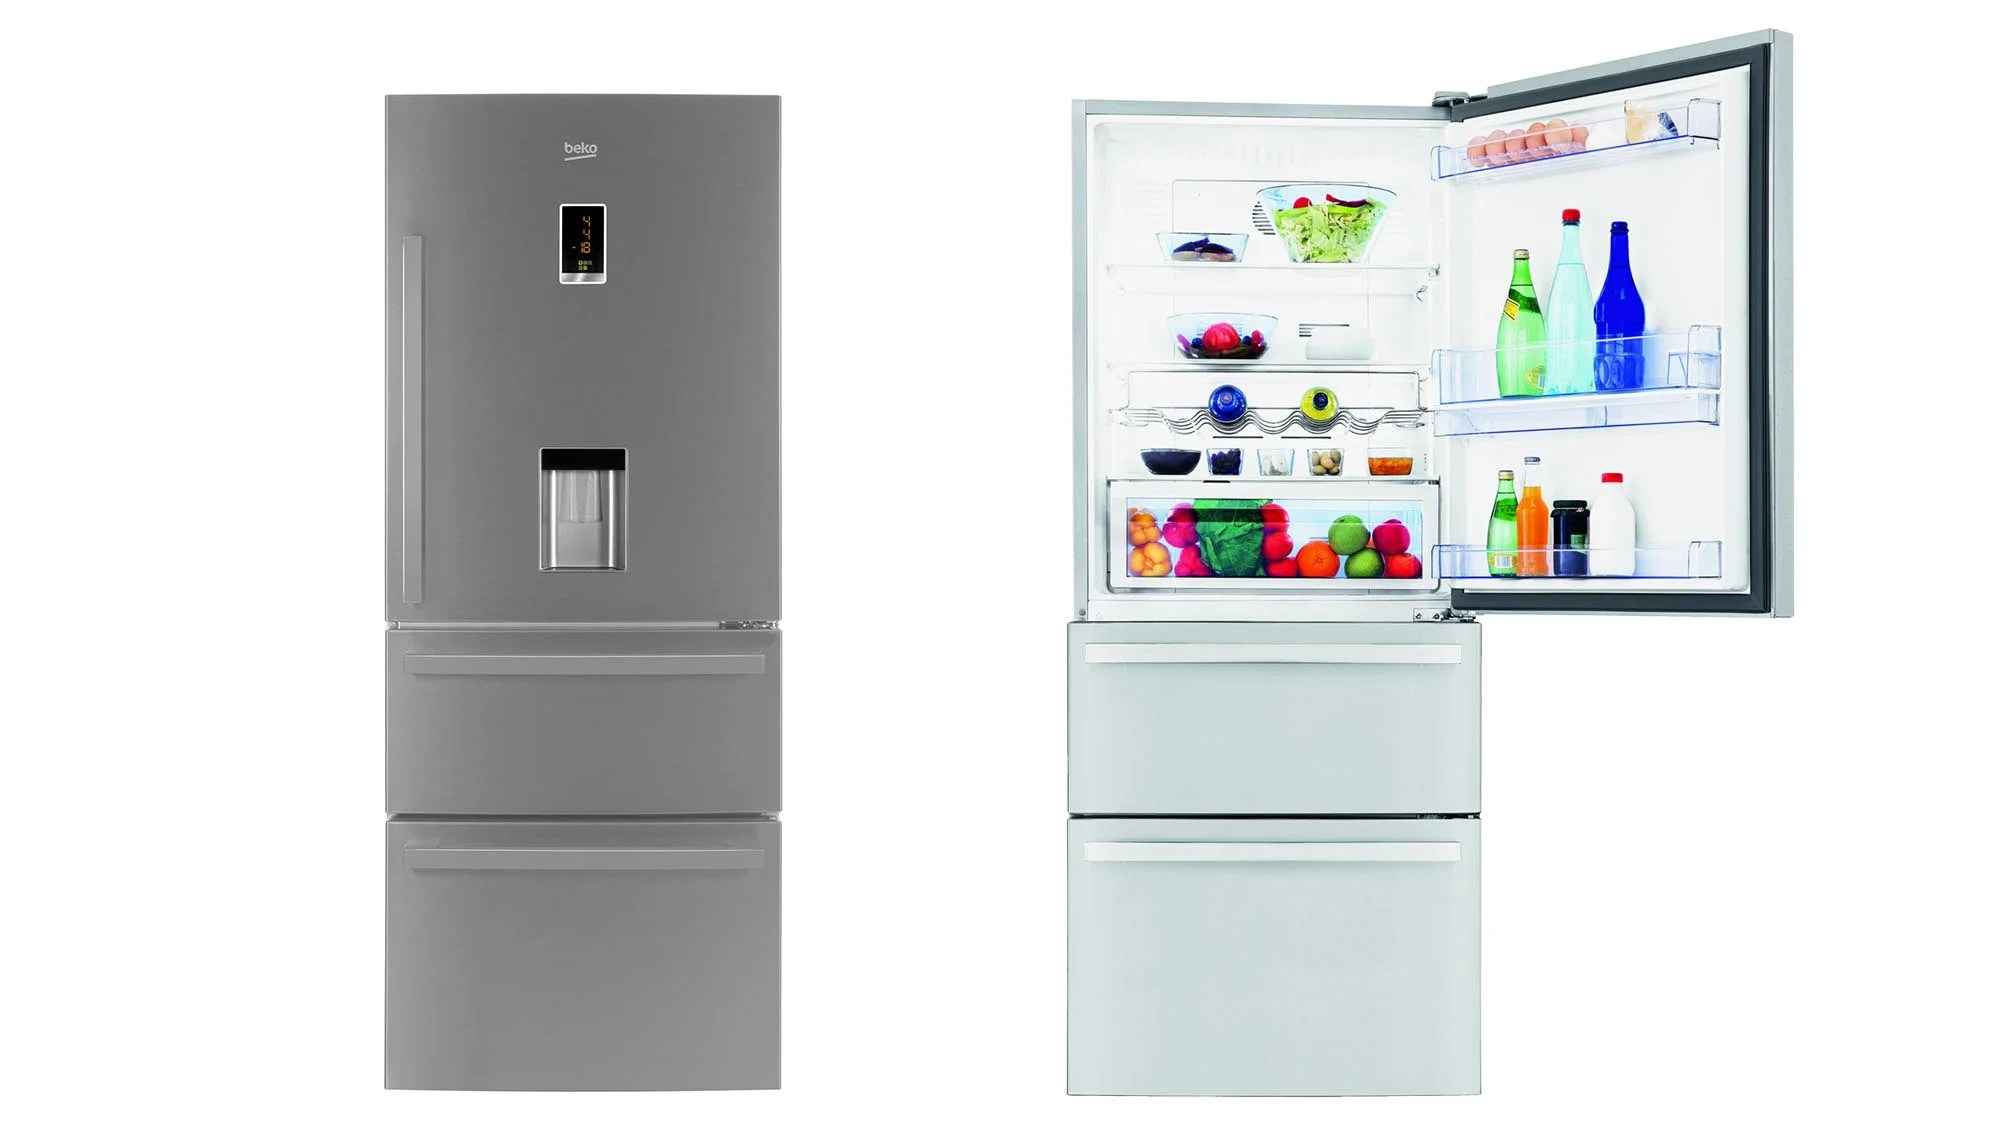 Fridge Freezer Best Fridge Freezer 2018 The Best Fridge Freezers To Buy From